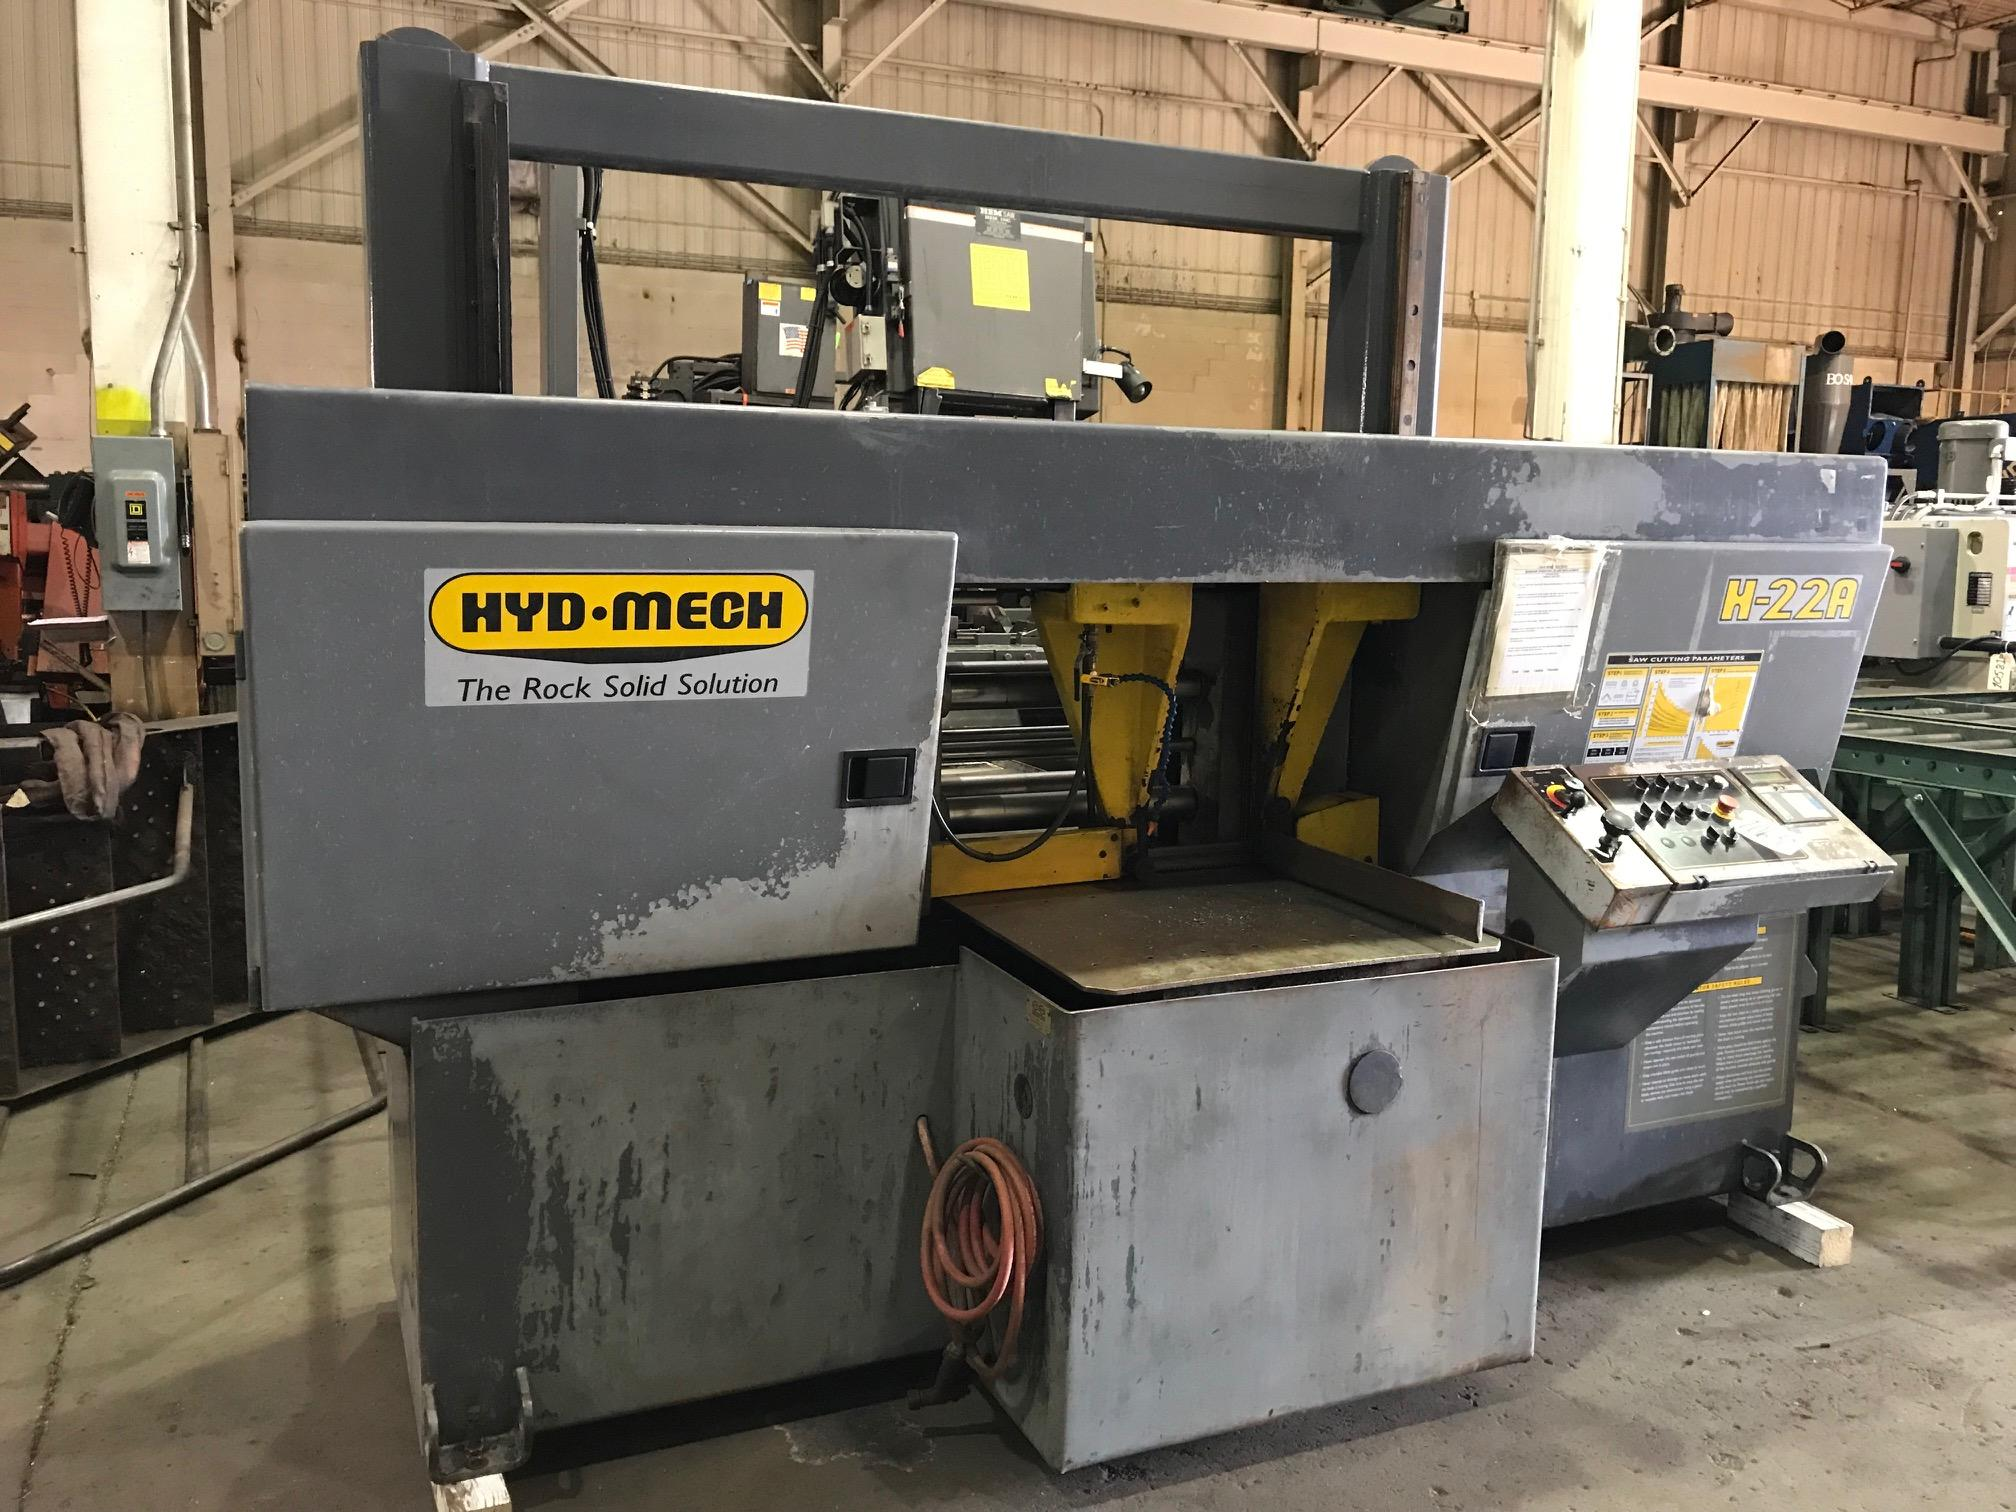 "USED HYD-MECH AUTOMATIC HORIZONTAL BANDSAW MODEL H-22A 22"" X 22"", STOCK# 10630, YEAR 2001"